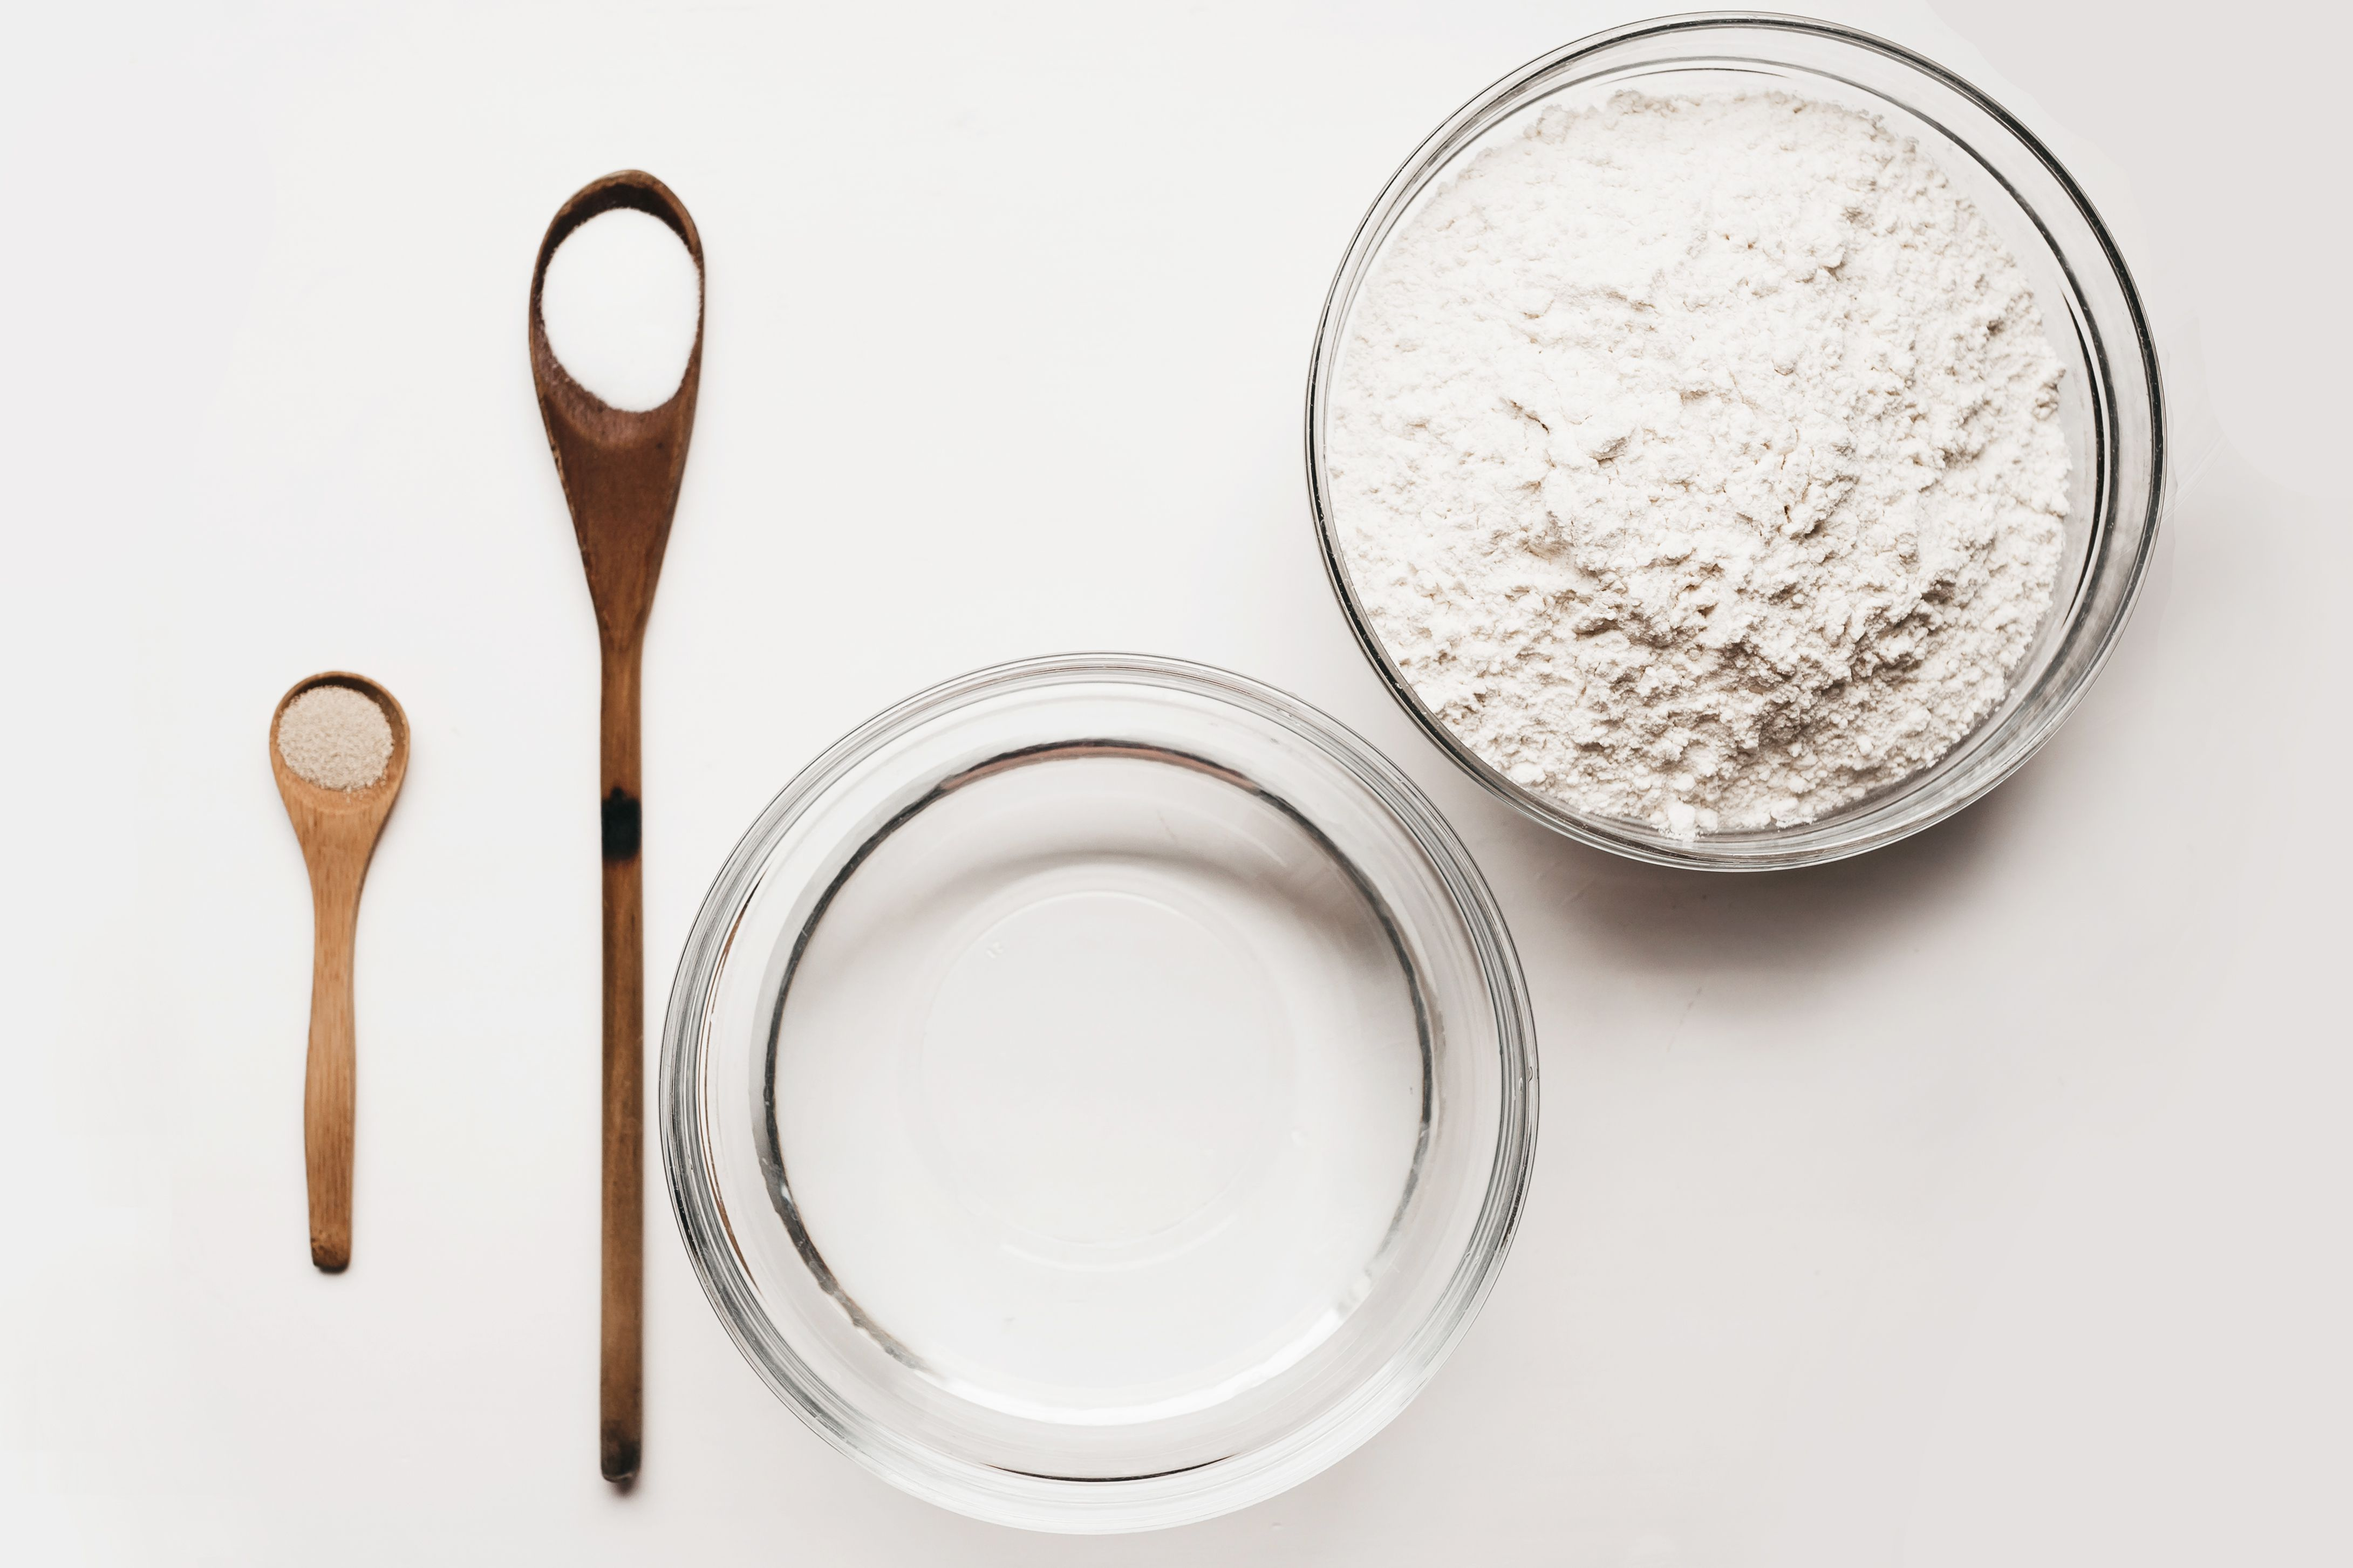 French Baguette Recipe Ingredients